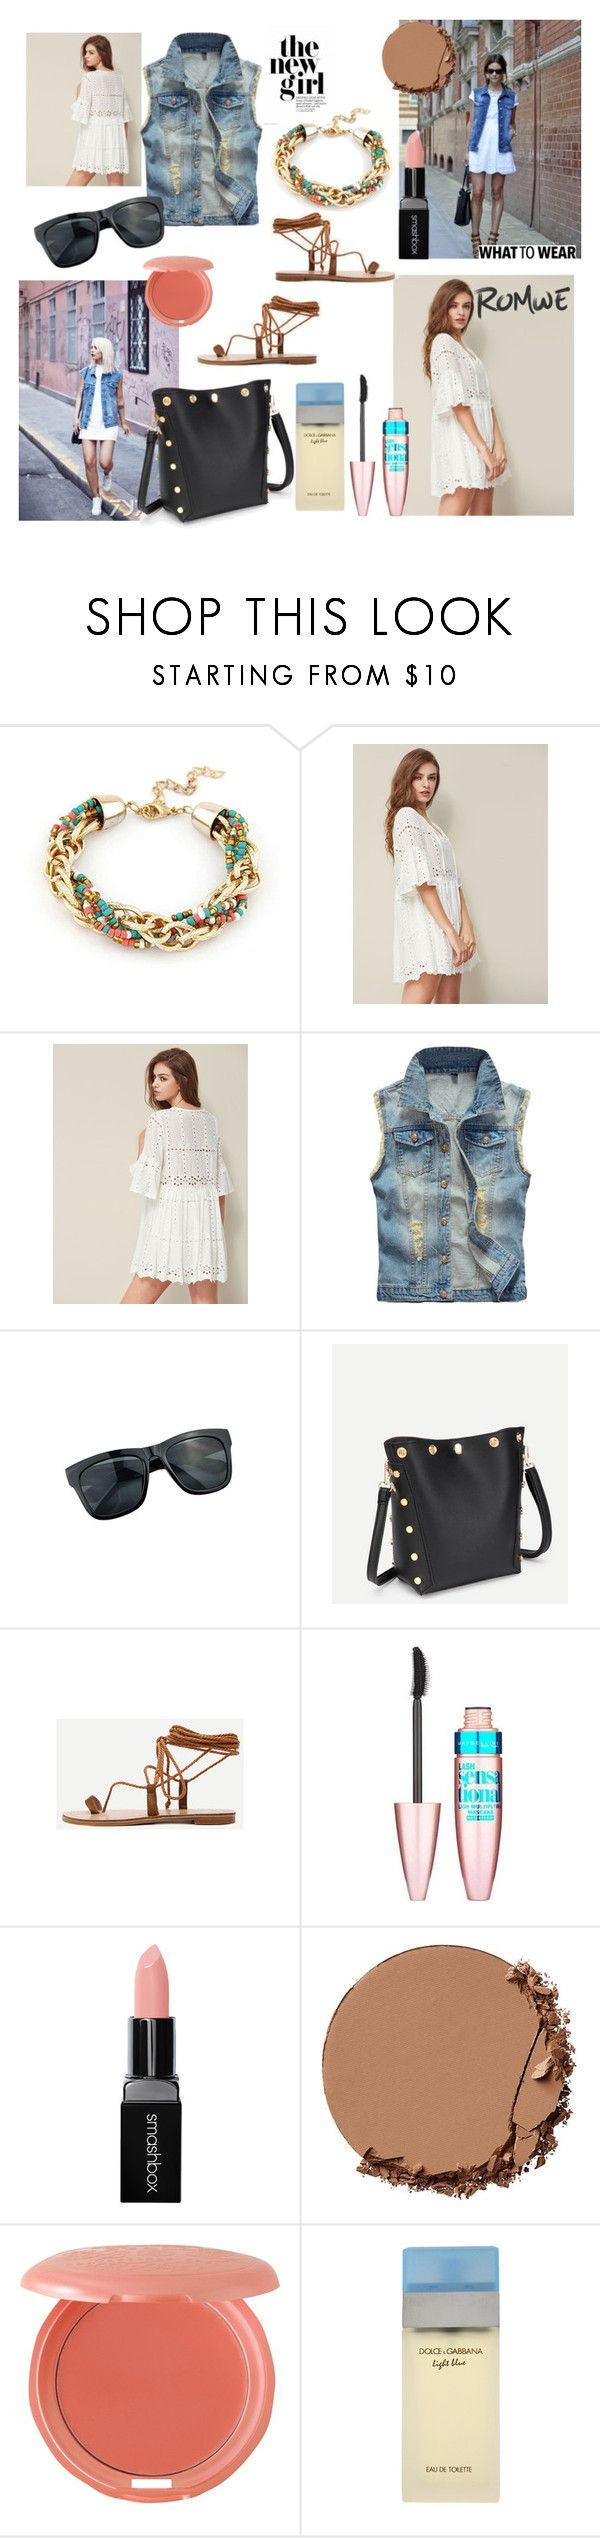 The new girl by paisleyvelvetandlace on Polyvore featuring Urban Decay, Stila, Smashbox, Maybelline and Dolce&Gabbana